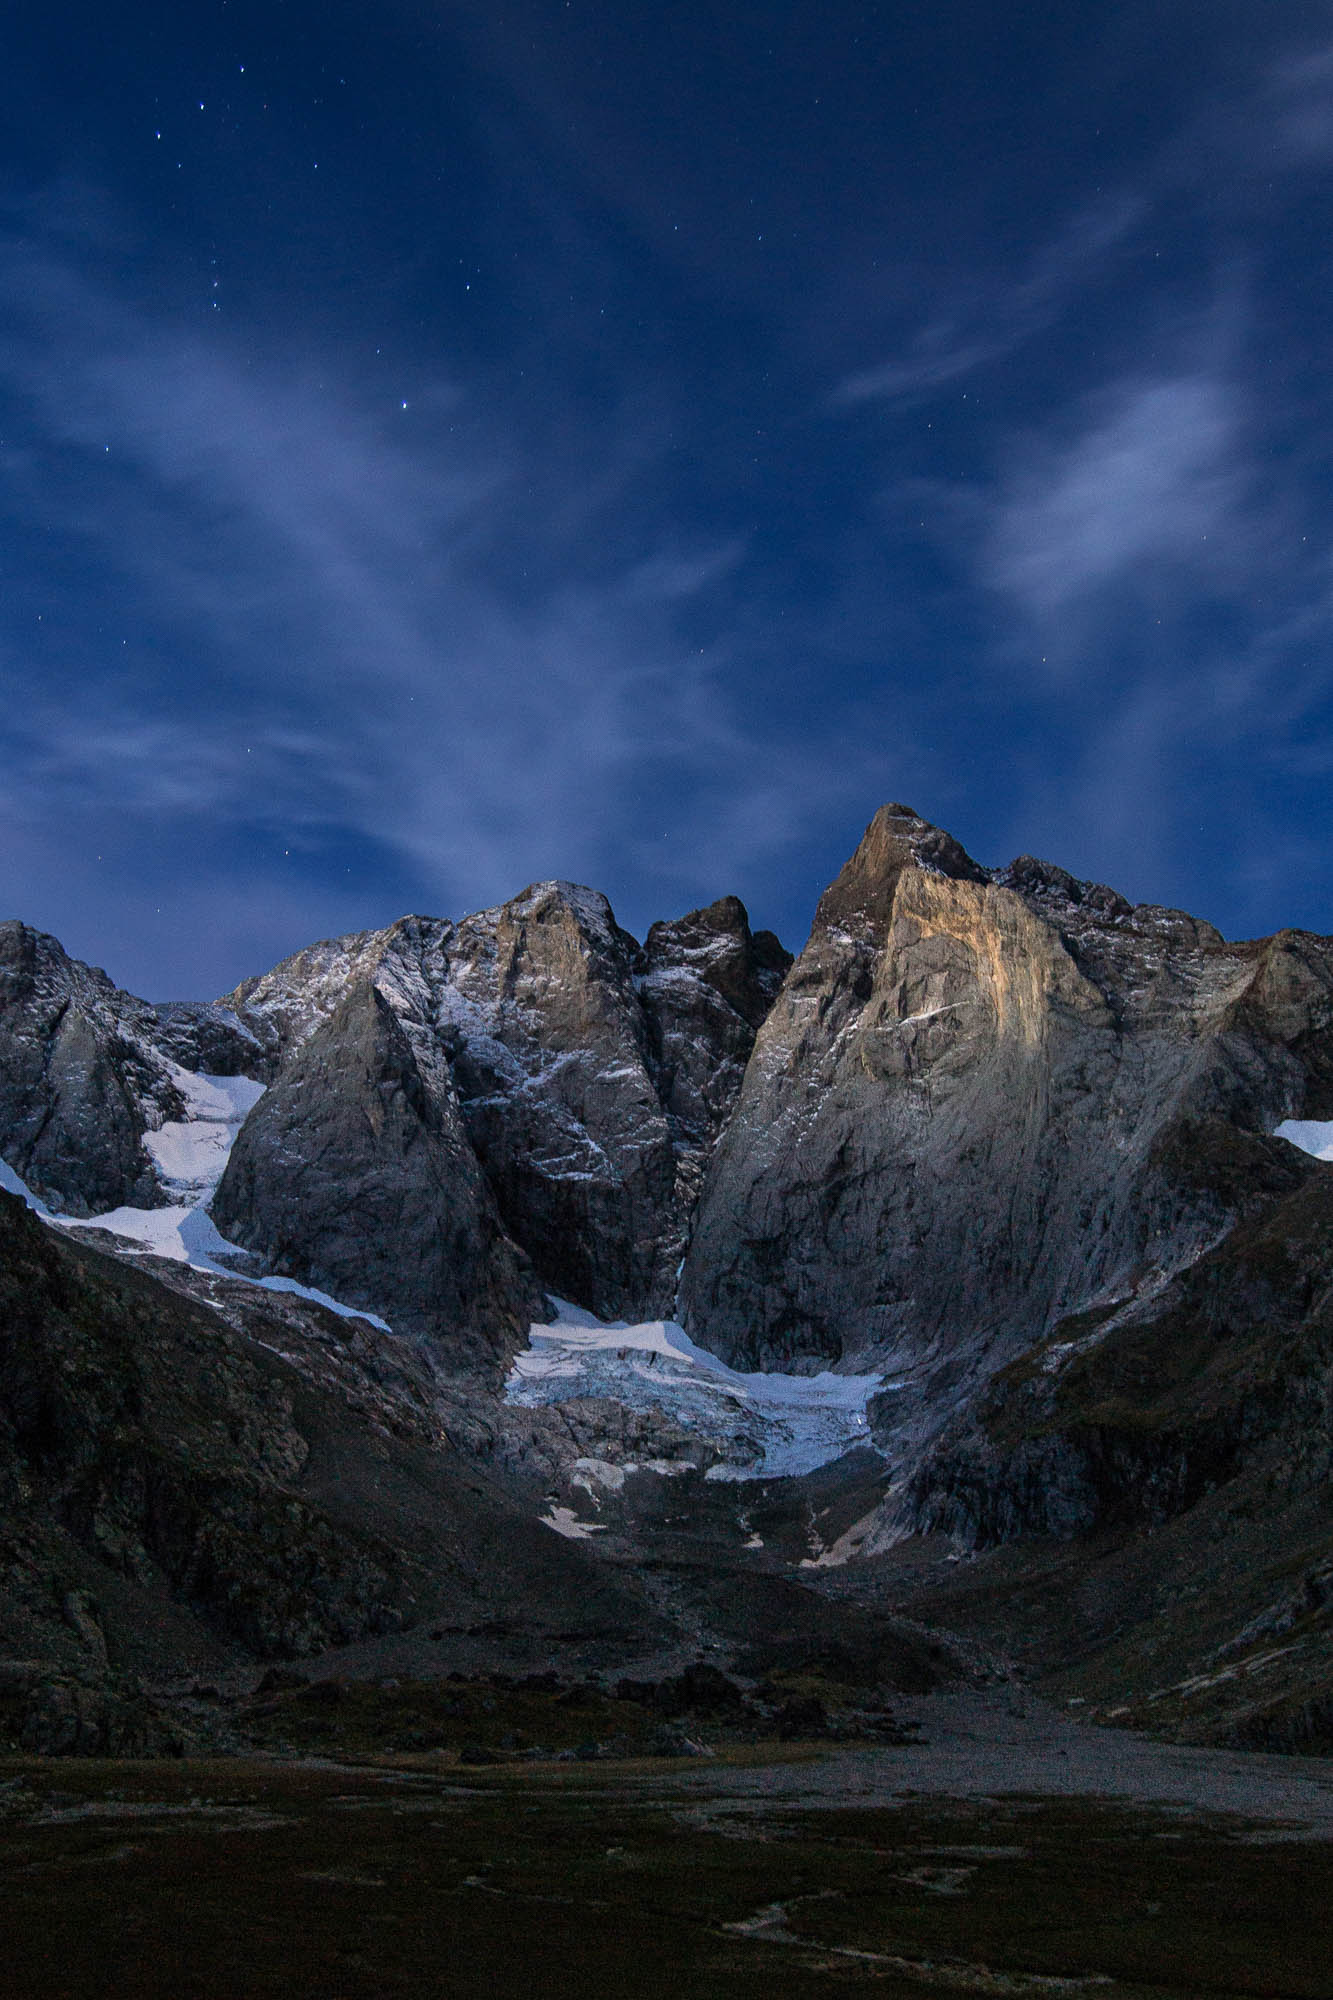 The great north face of Vignemale at night